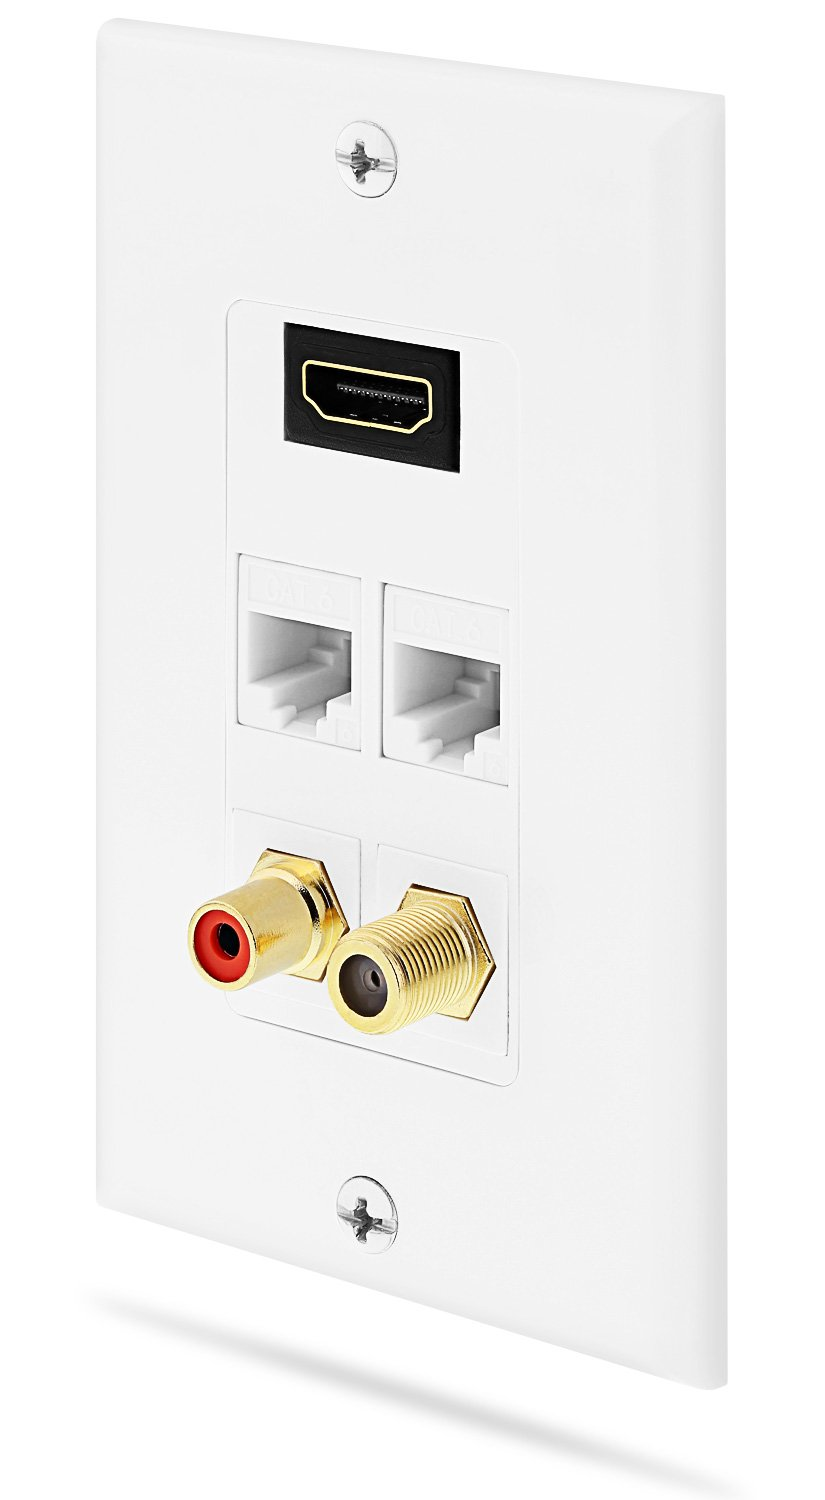 Fosmon Wall Plate with Gold-Plated High Speed HDMI Port (Ethernet Compatible), Dual RJ45 Ethernet Ports, F Jack Coaxial Ports and RCA Audio Port - White (Fosmon Retail Packaging) Fosmon Technology HD1921